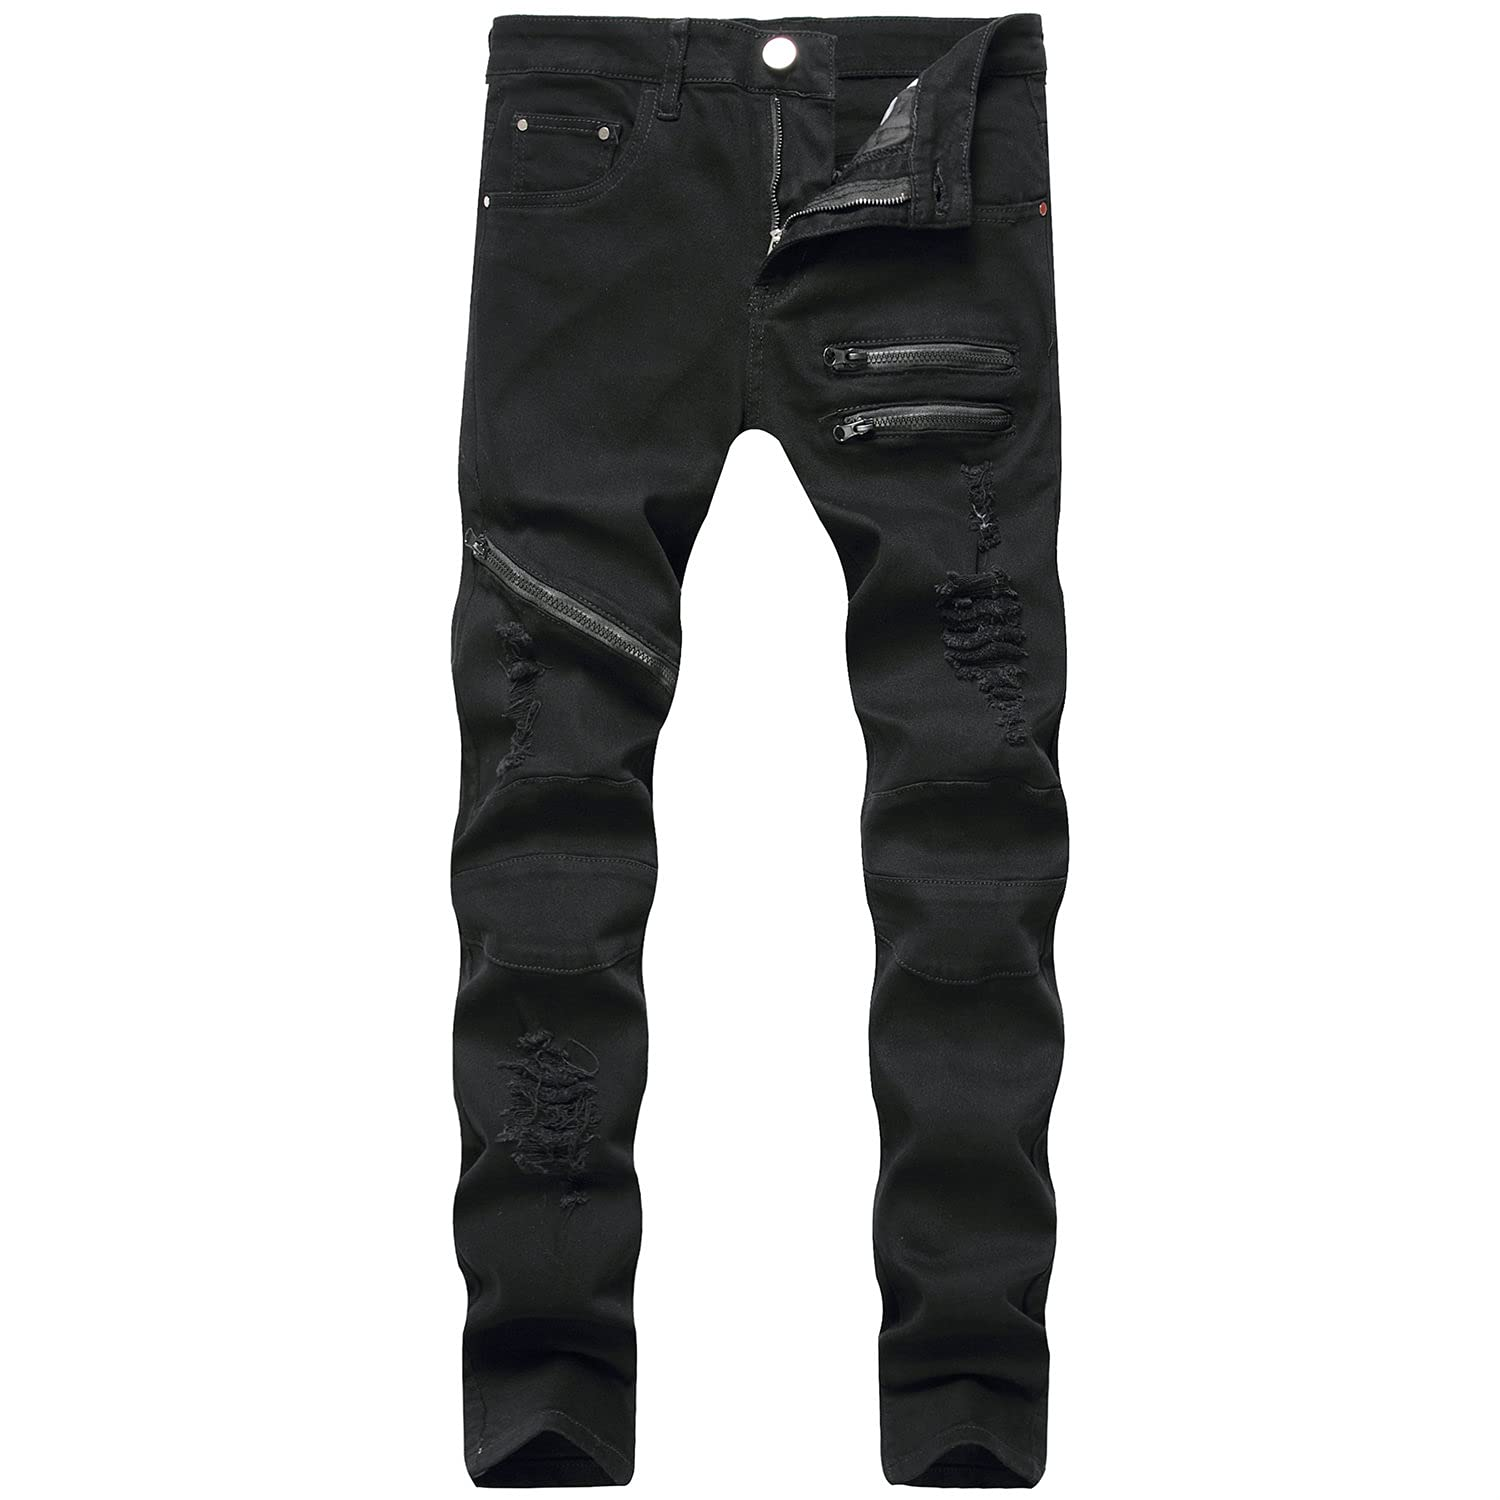 Men's Casual Slim Fit Solid Color New mail order Ranking TOP3 Ripped Deni Skinny Holes Jeans